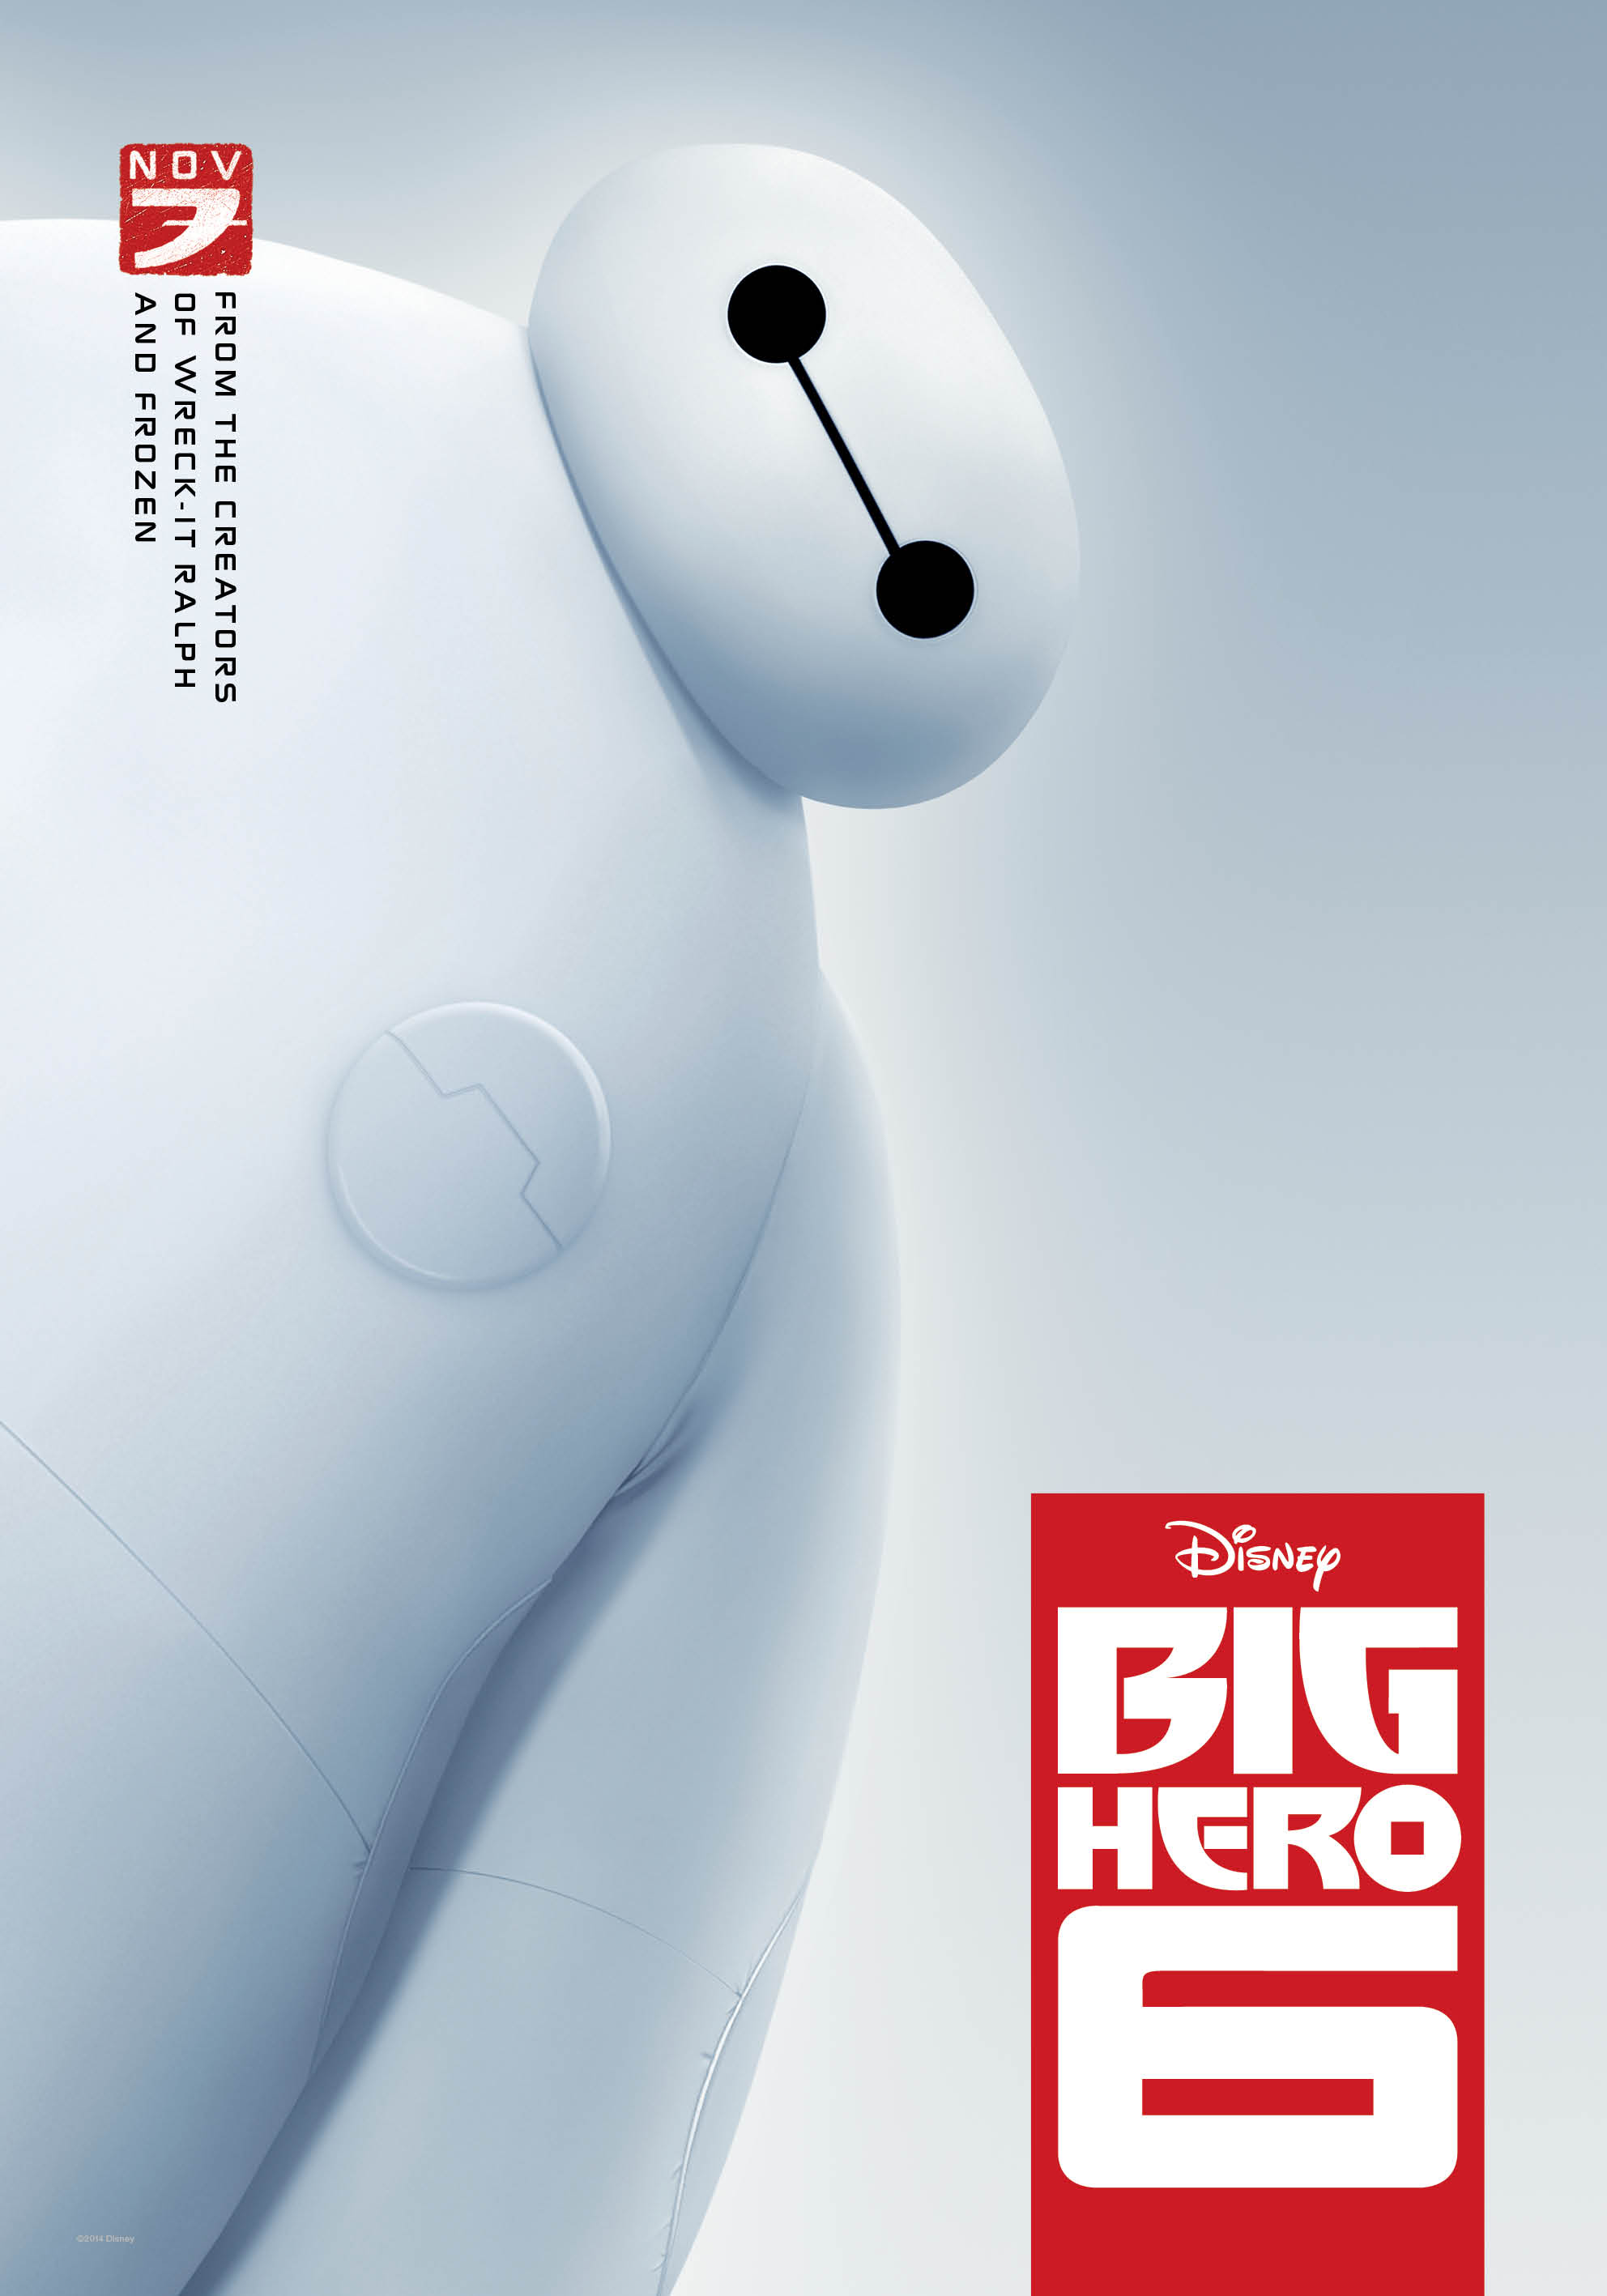 Scott Adsit in Big Hero 6 (2014)